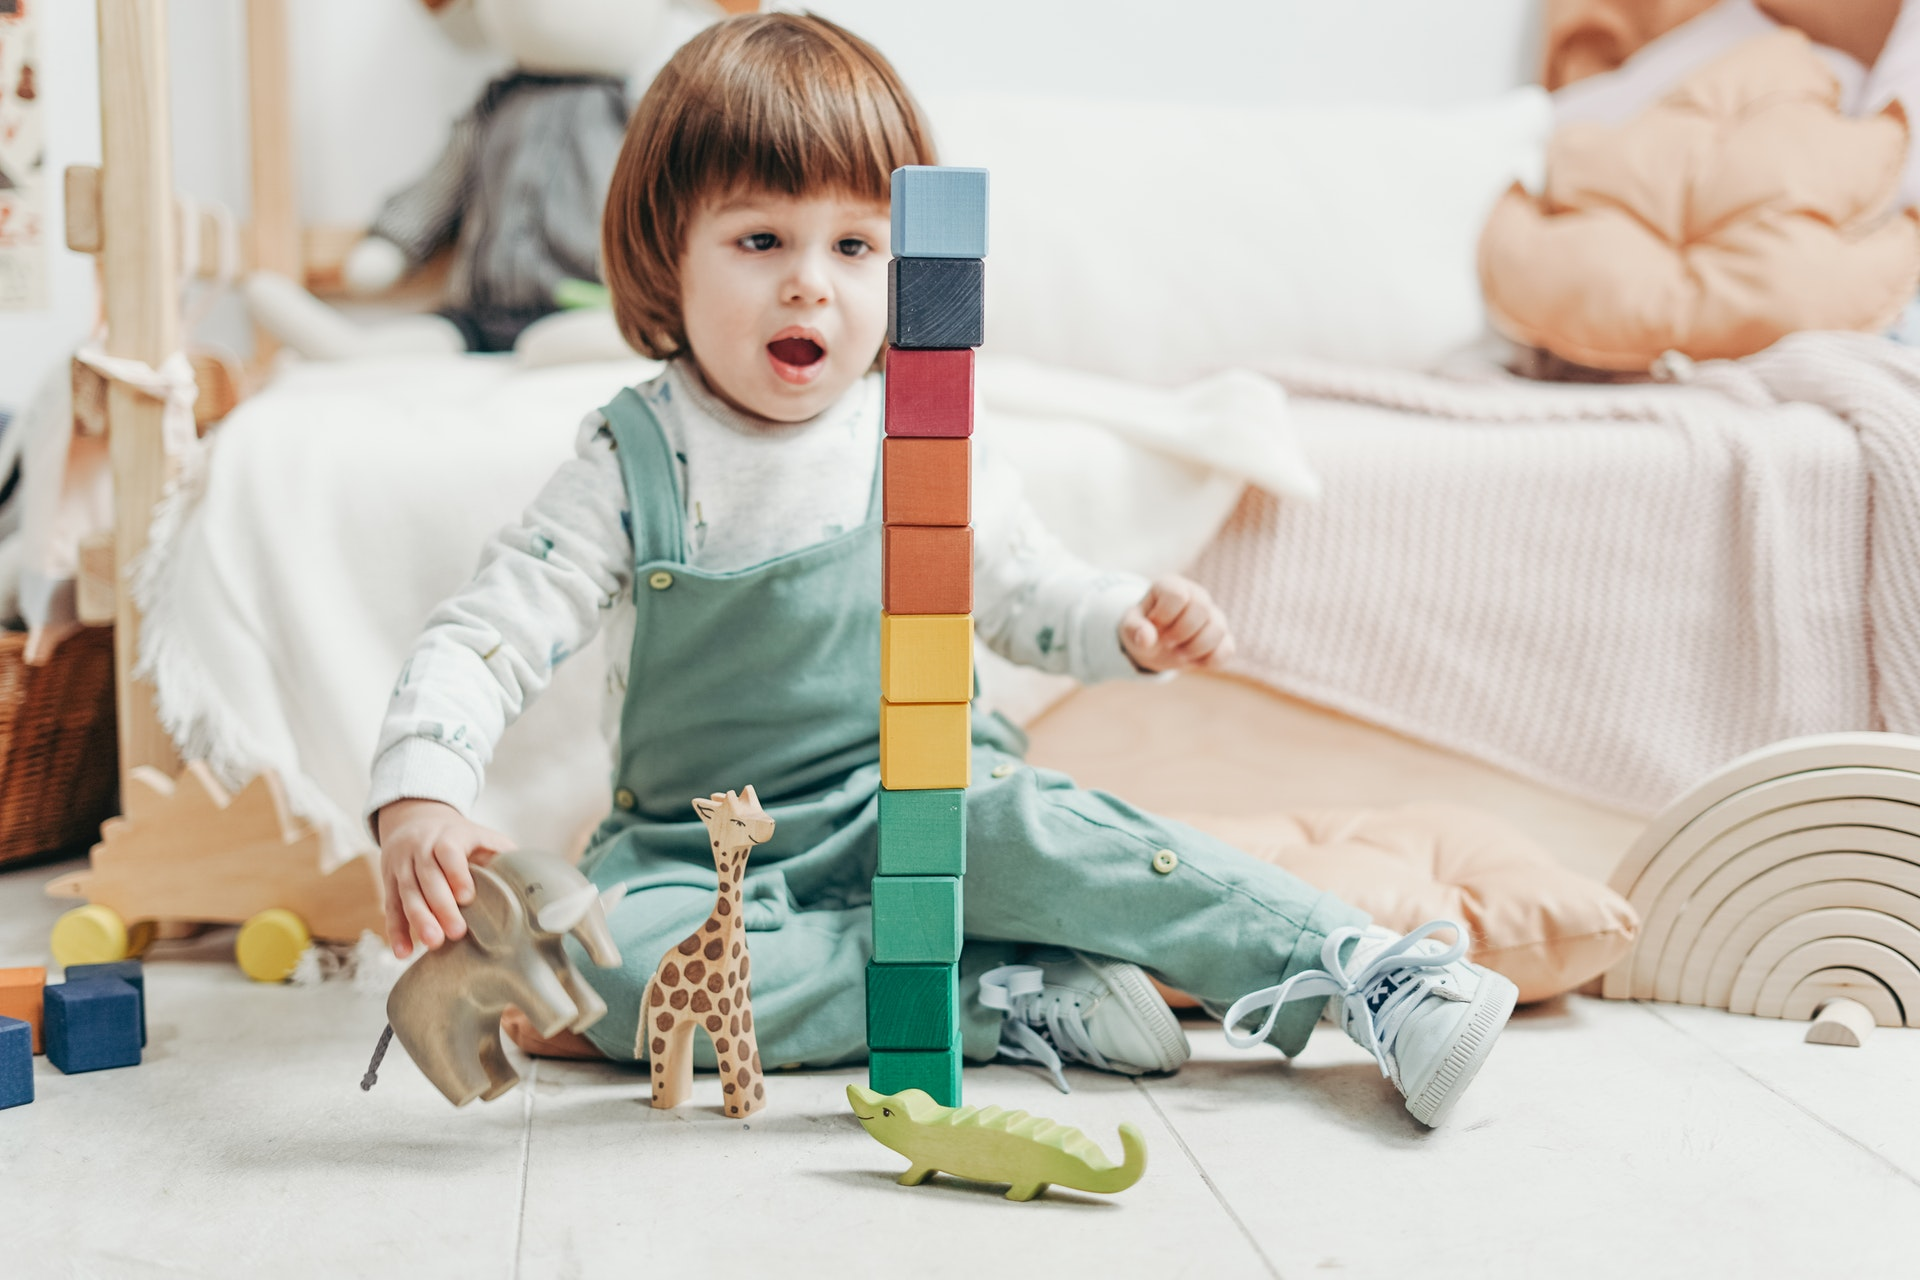 kid-toddler-with-building-blocks-lego-learning-cube-academy-best-preschol-in-plano-texas